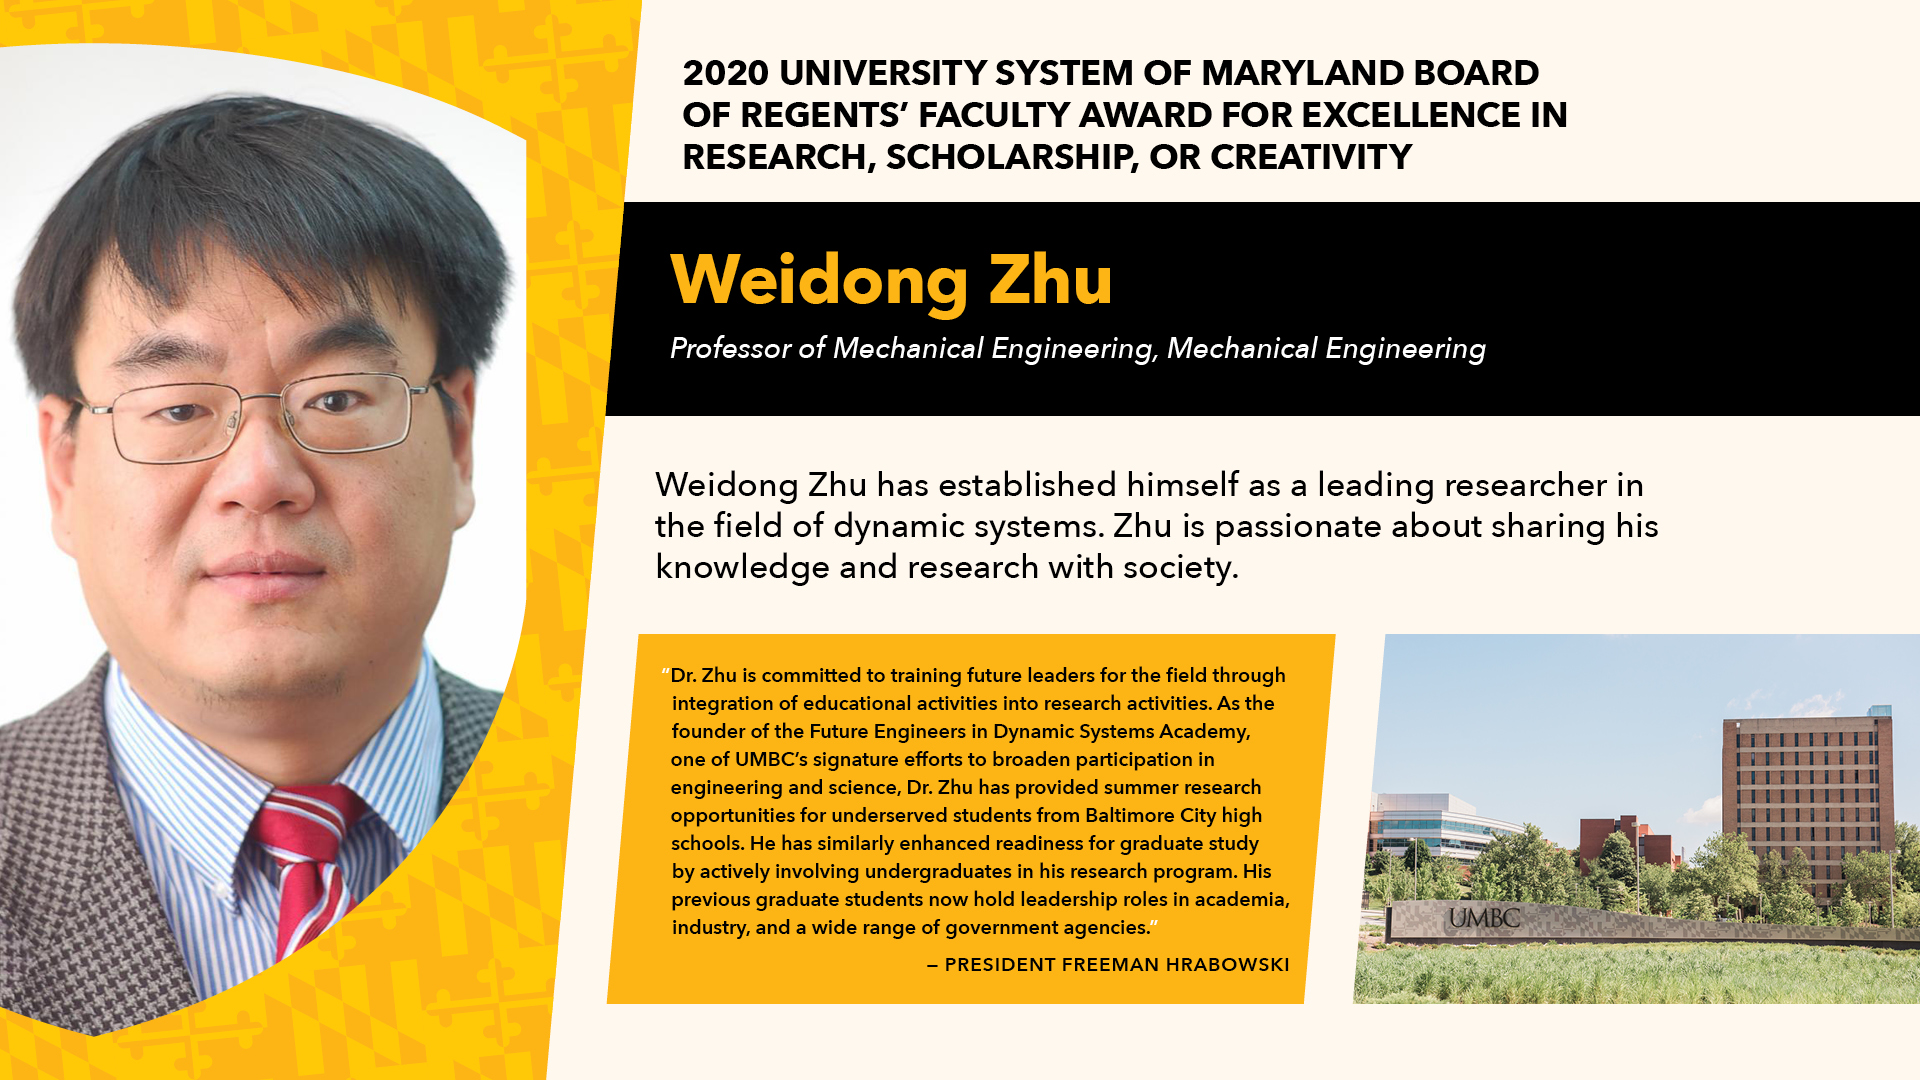 Dr. Weidong Zhu awarded Faculty Excellence Award